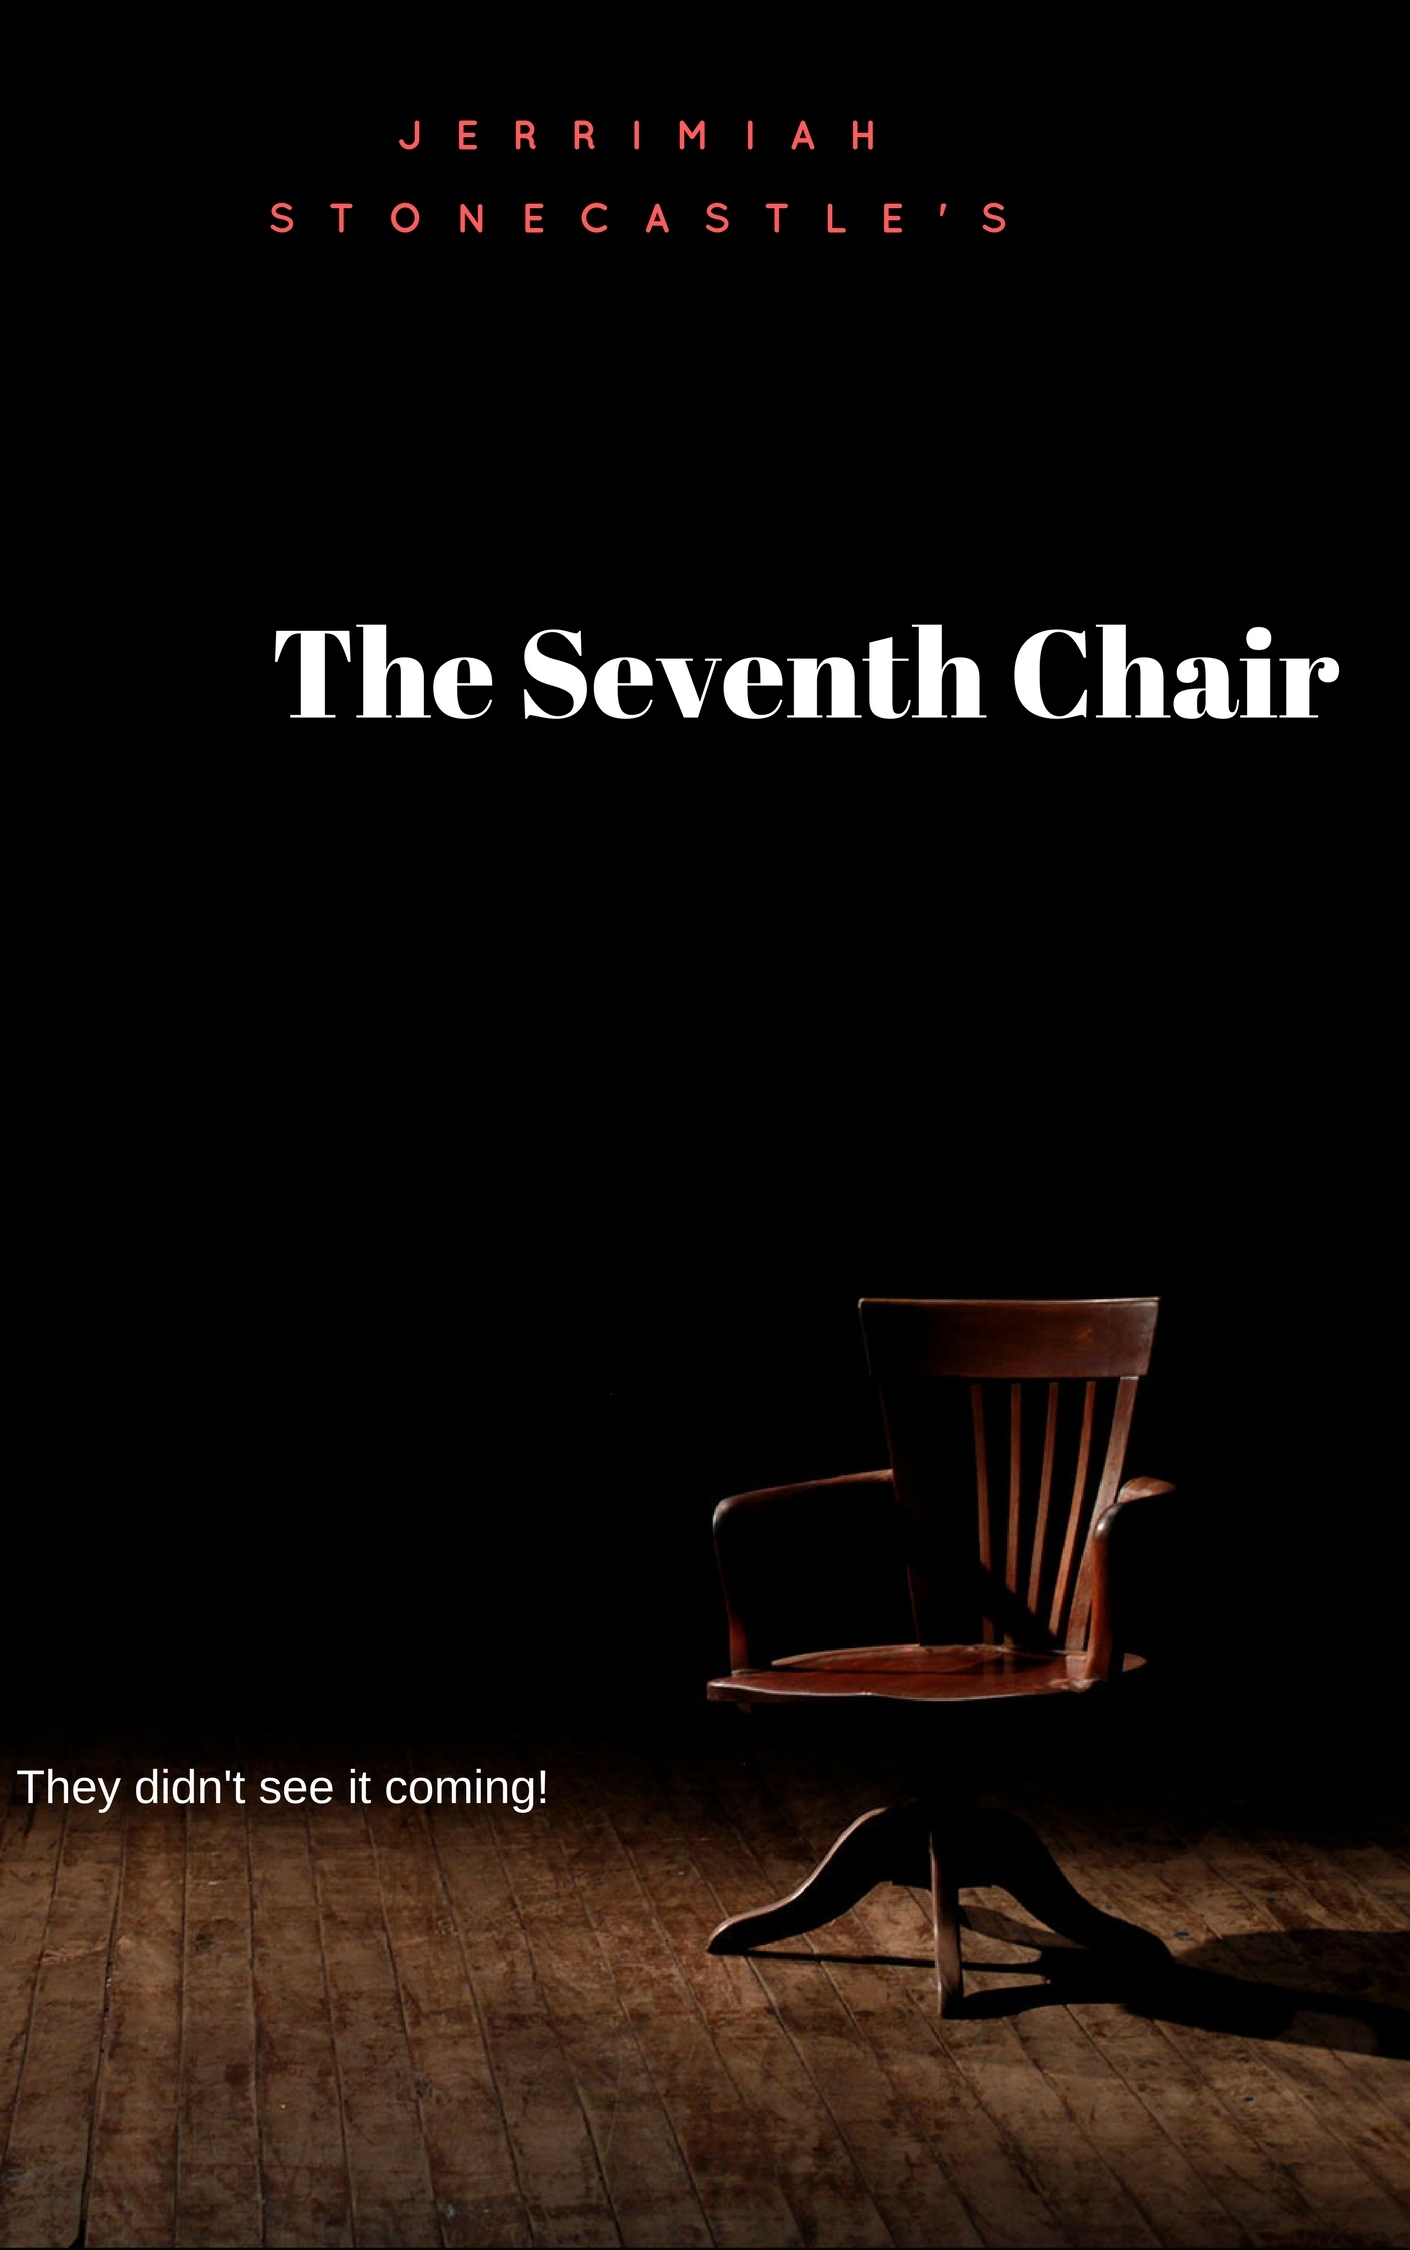 The 7th chair final